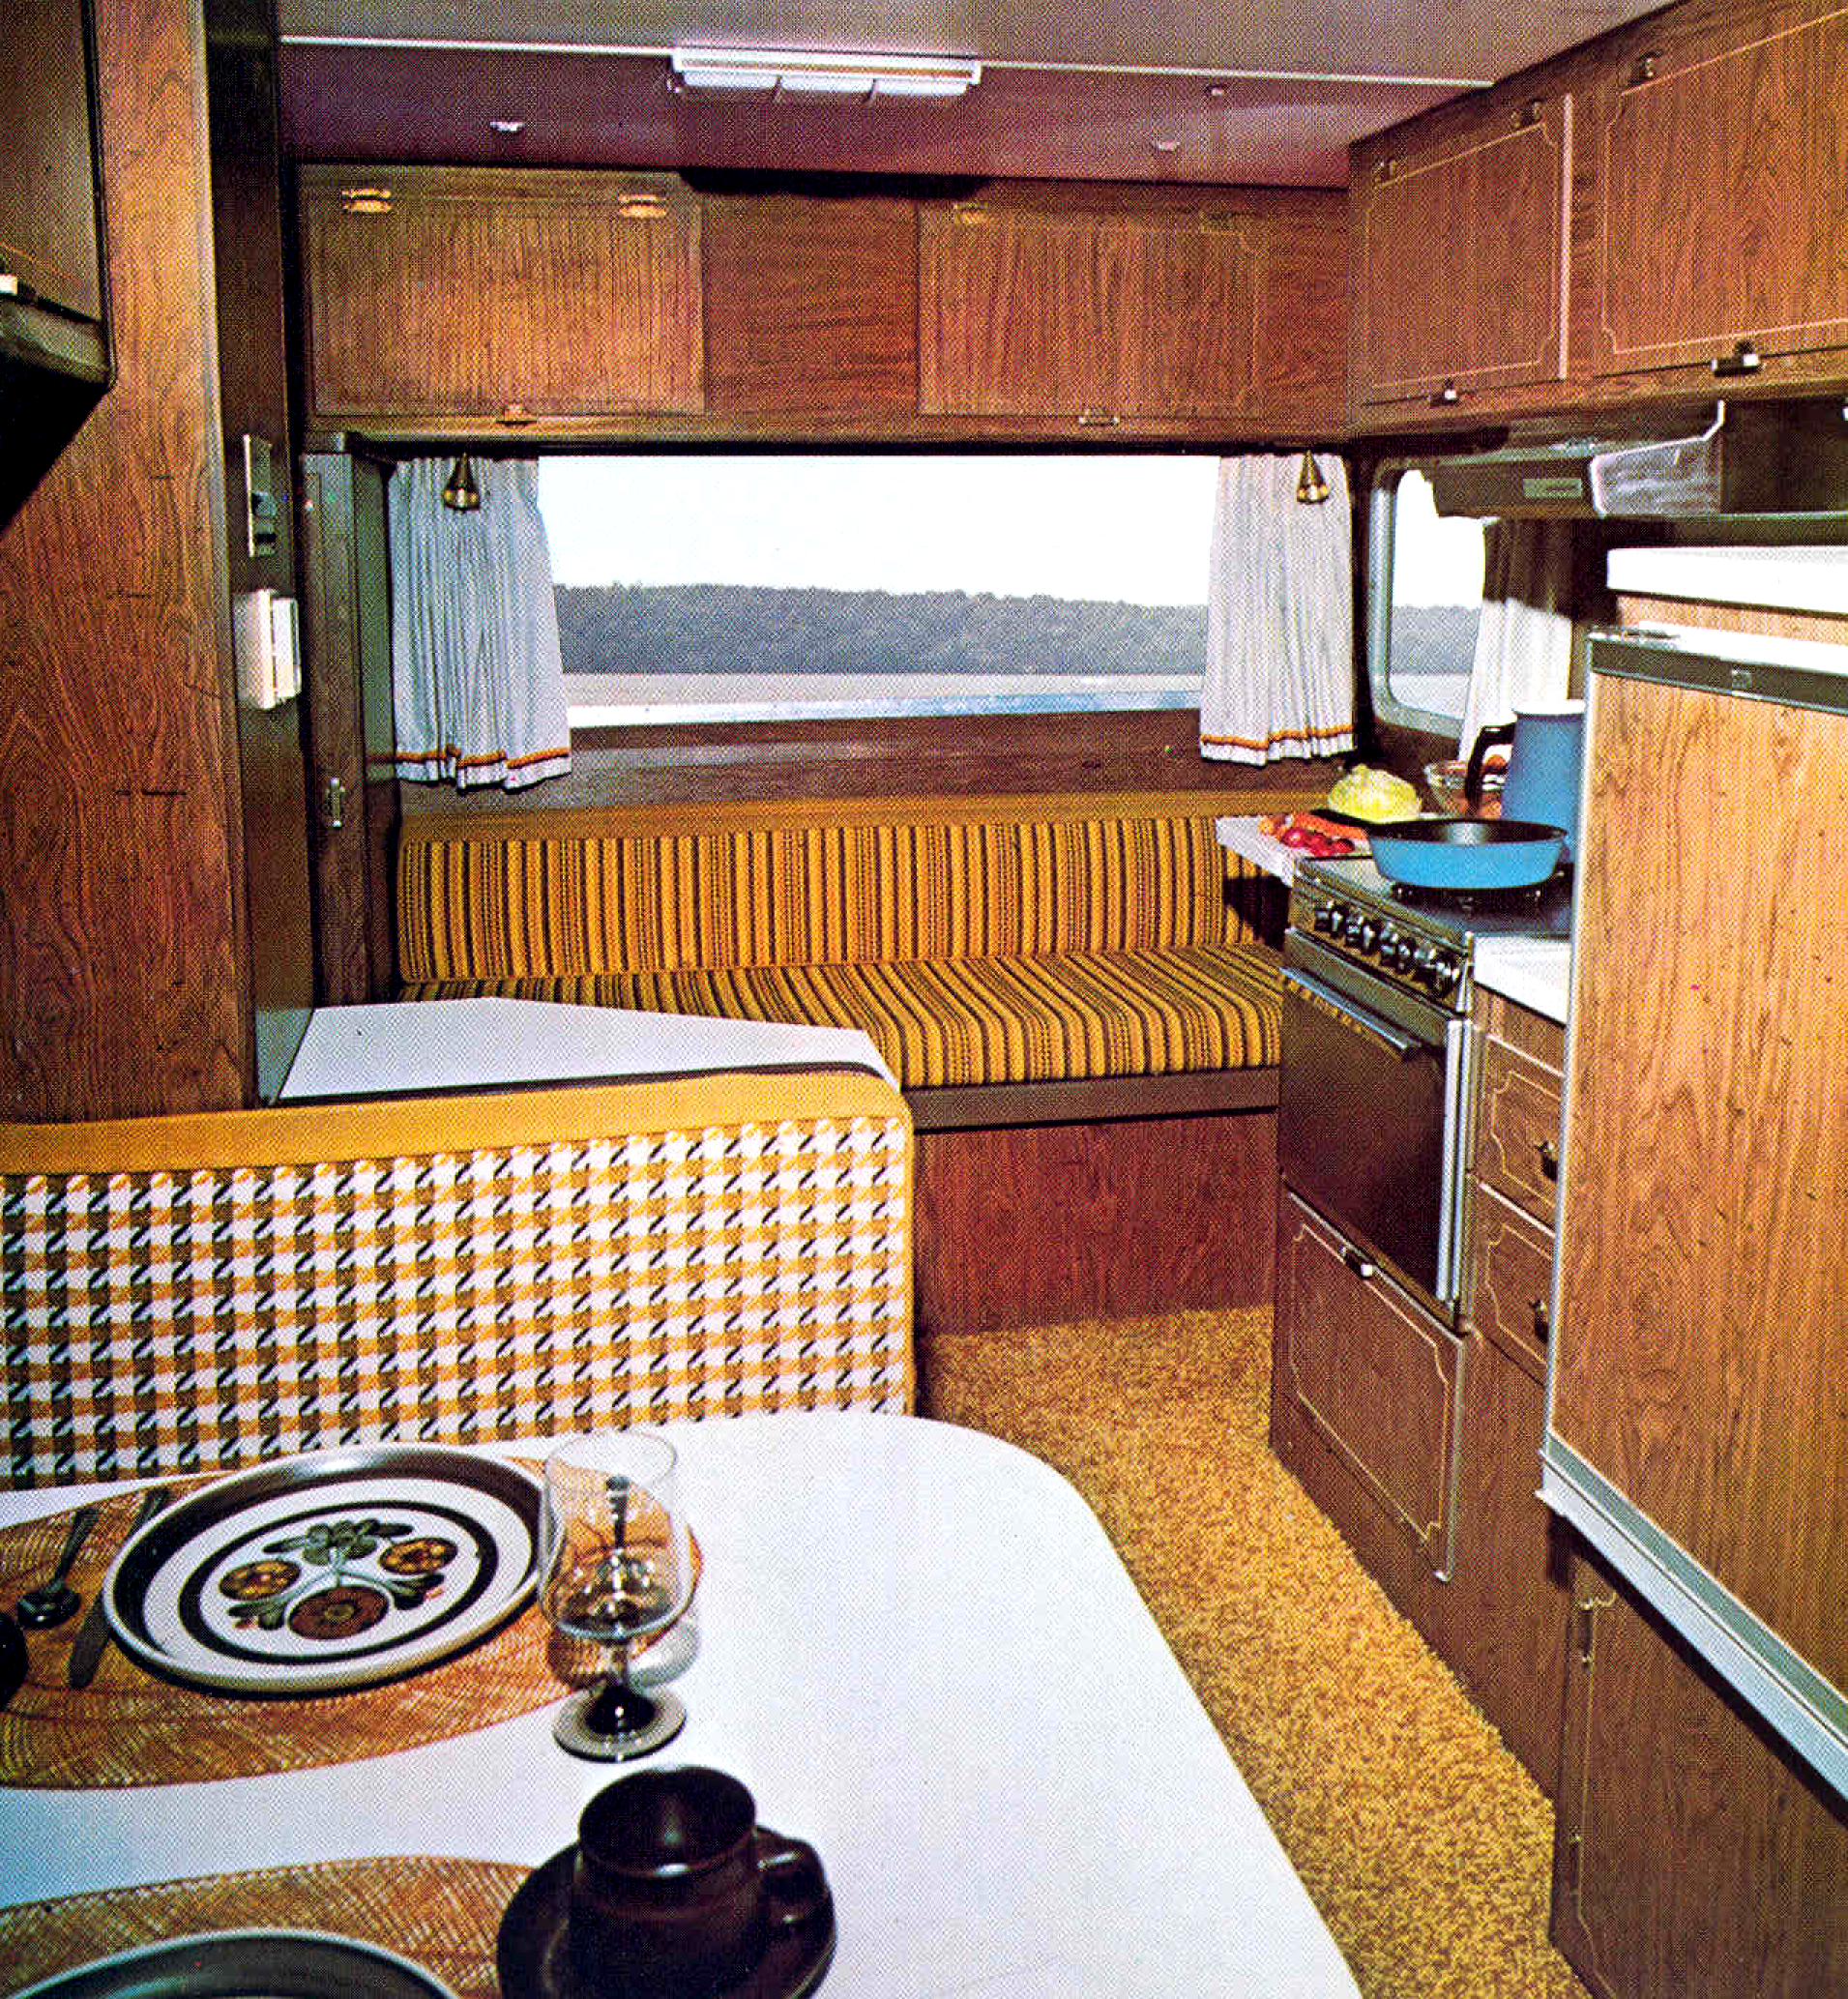 Campers of Shag (Part 2): Another Look Inside Groovy RV's of the